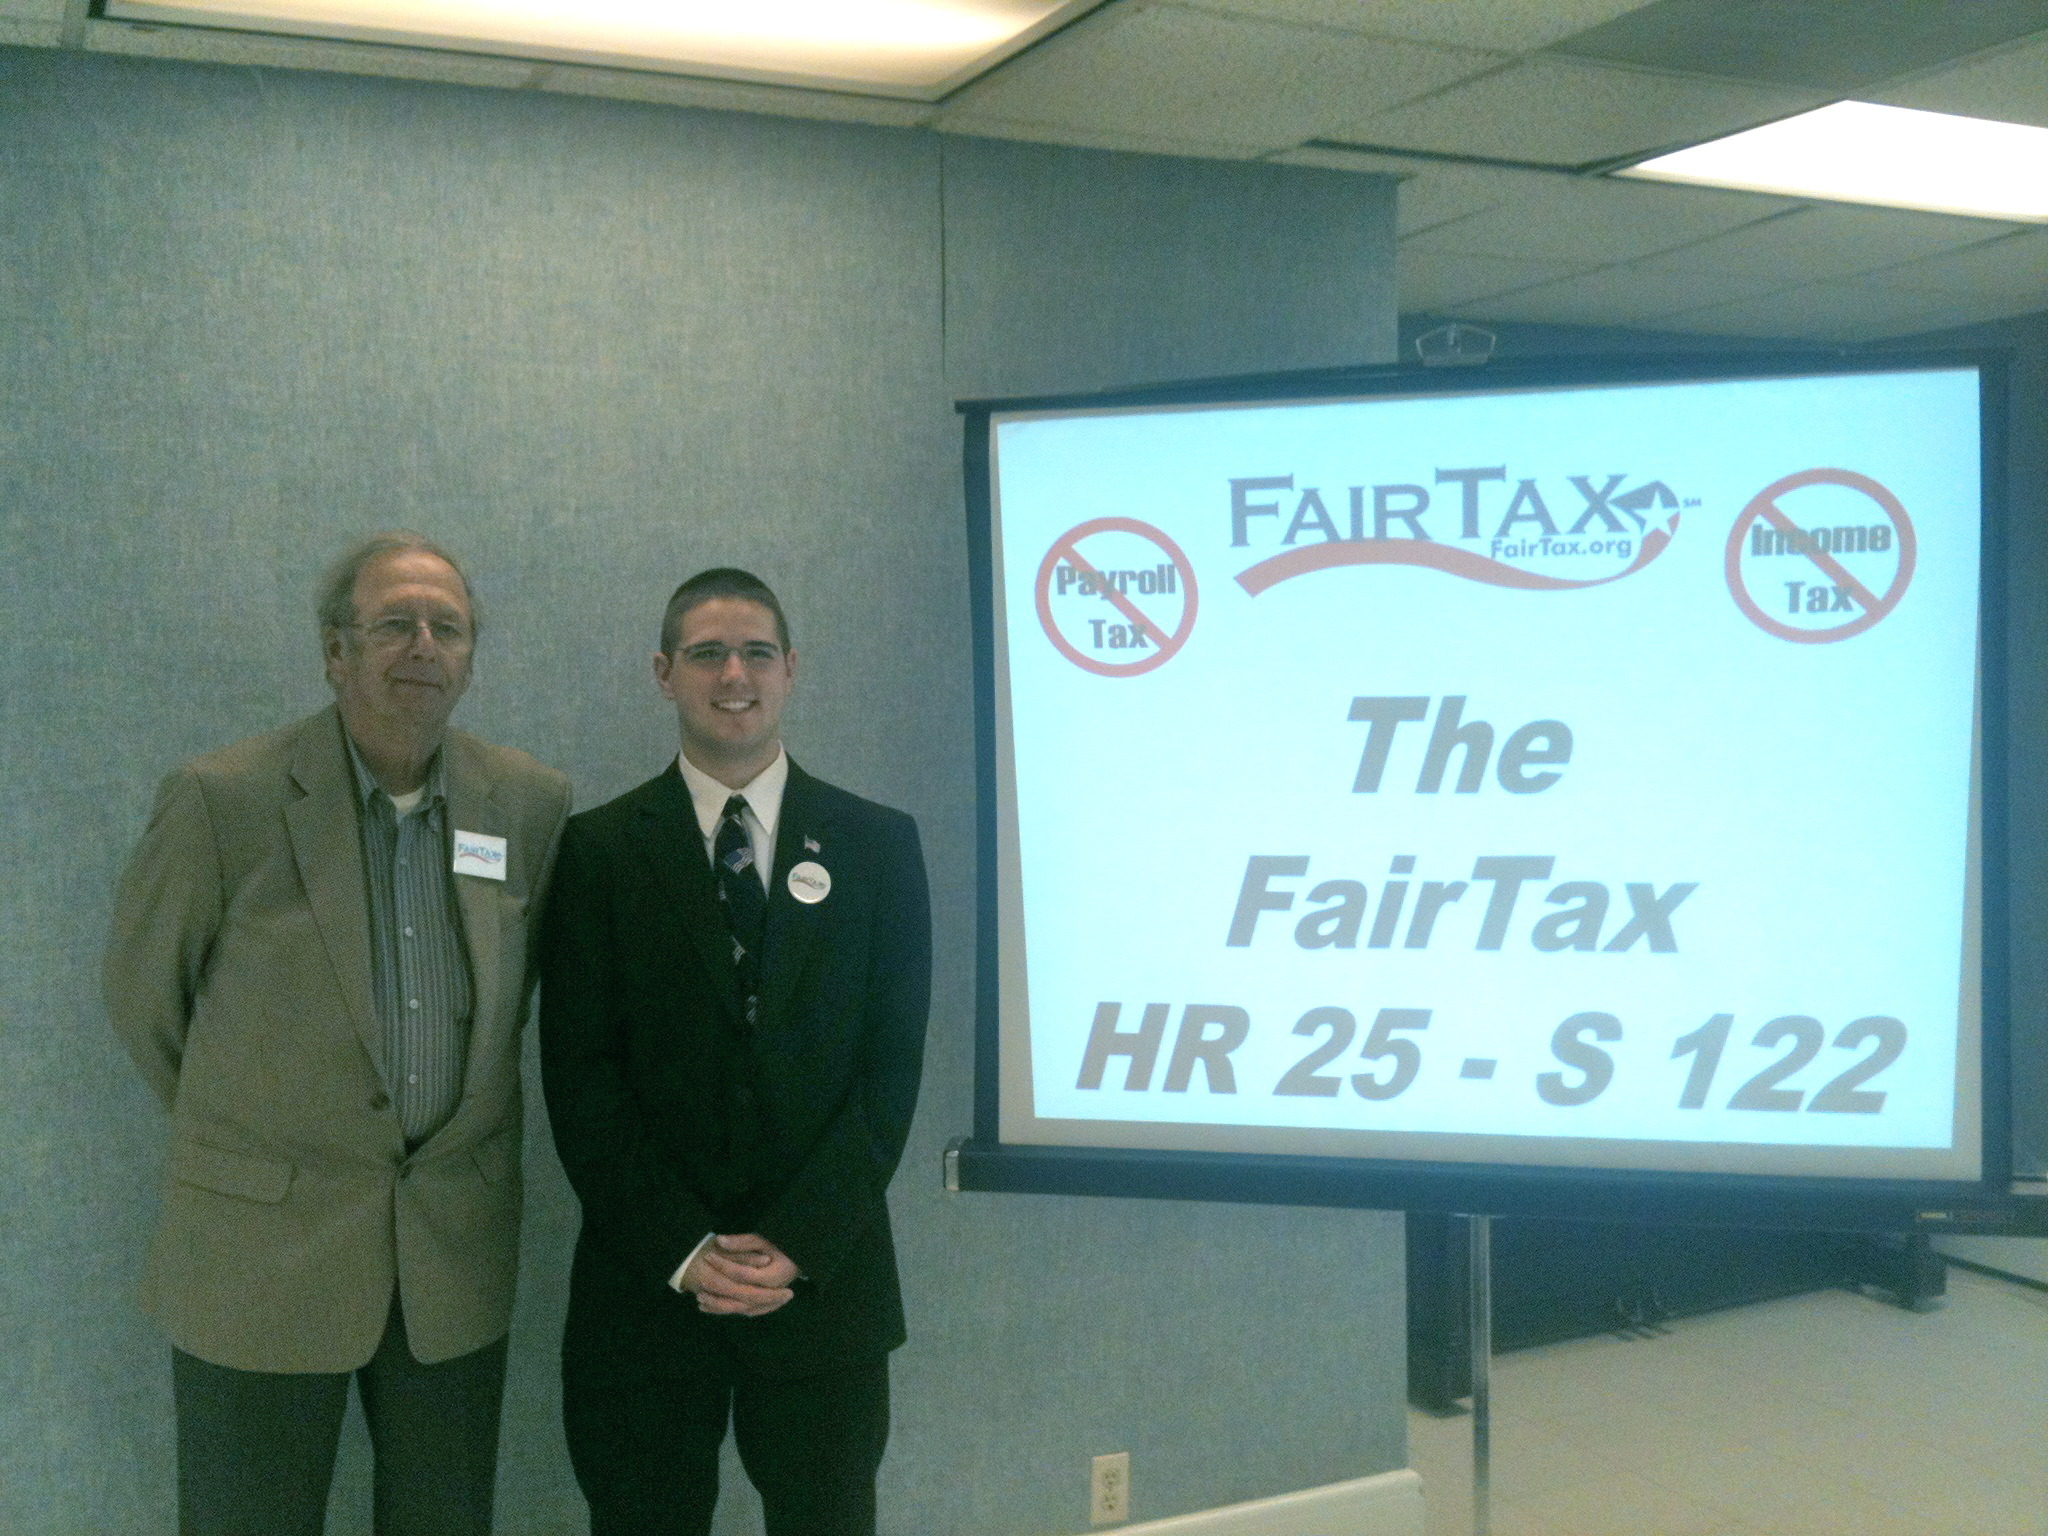 a2ca9fbab0cfb5e901a7_fair_tax_event.JPG